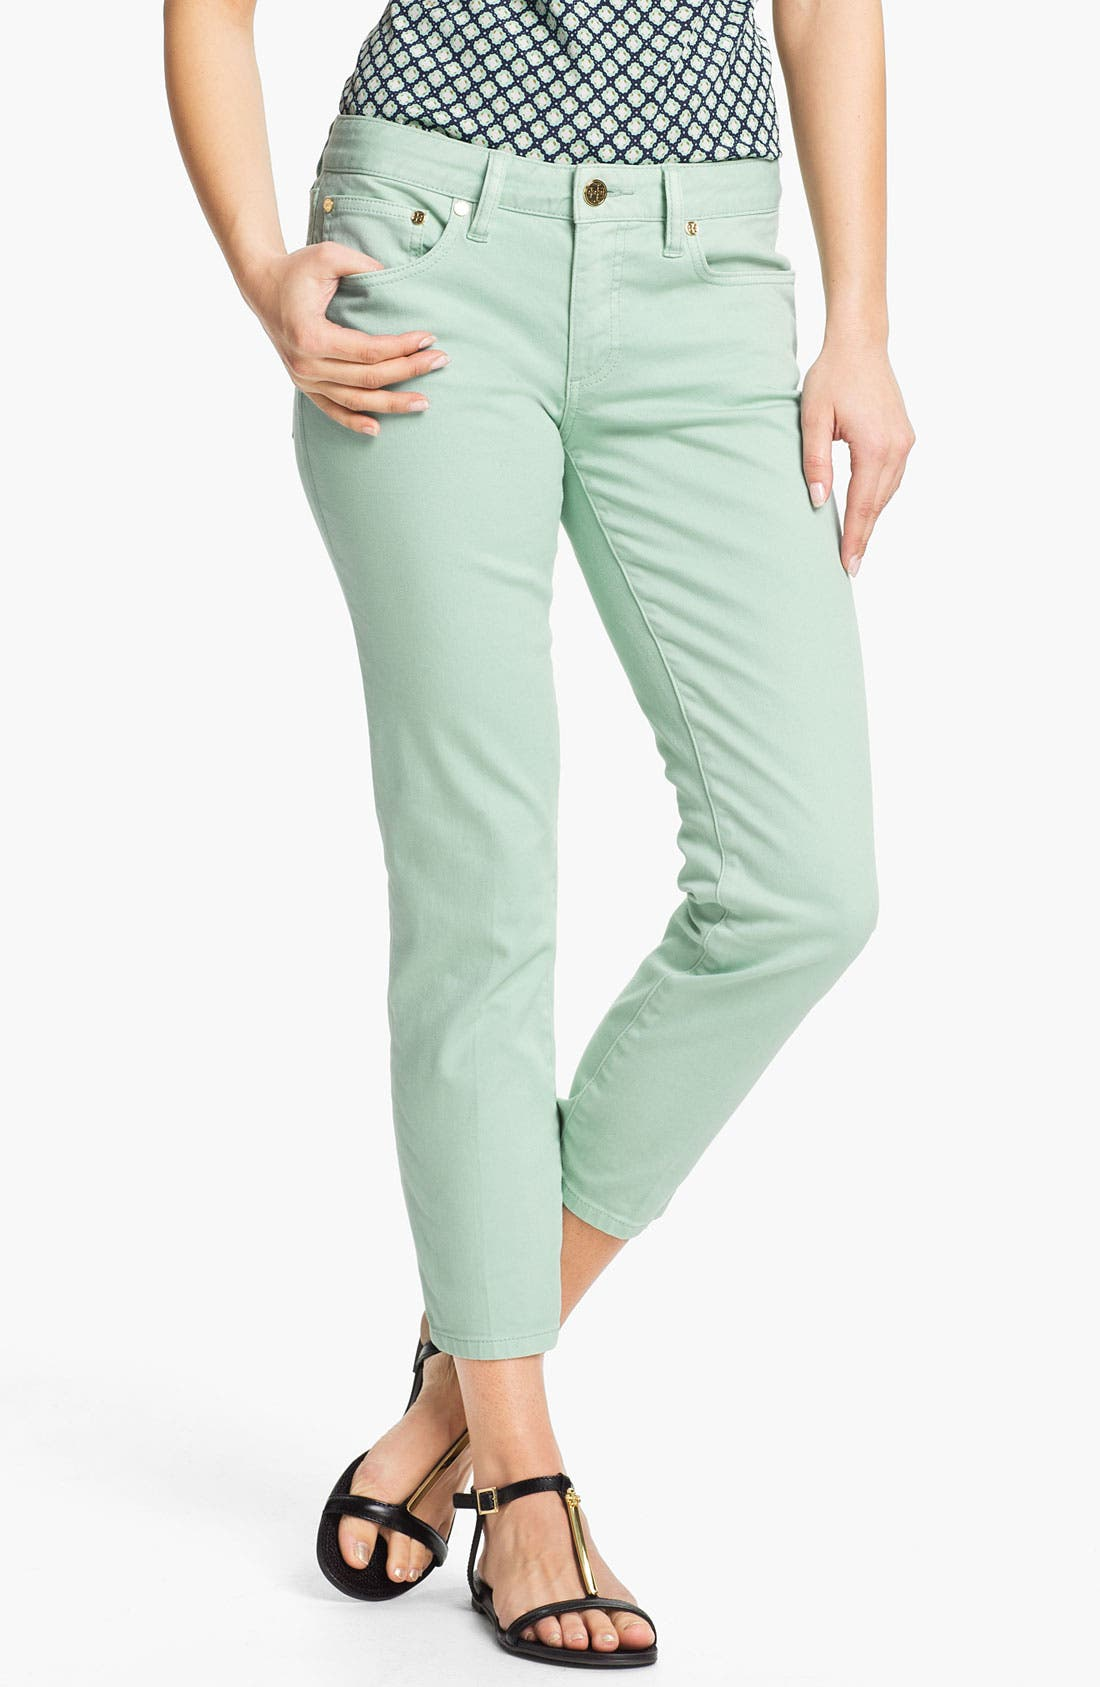 Main Image - Tory Burch 'Alexa' Crop Skinny Stretch Jeans (Seaglass)